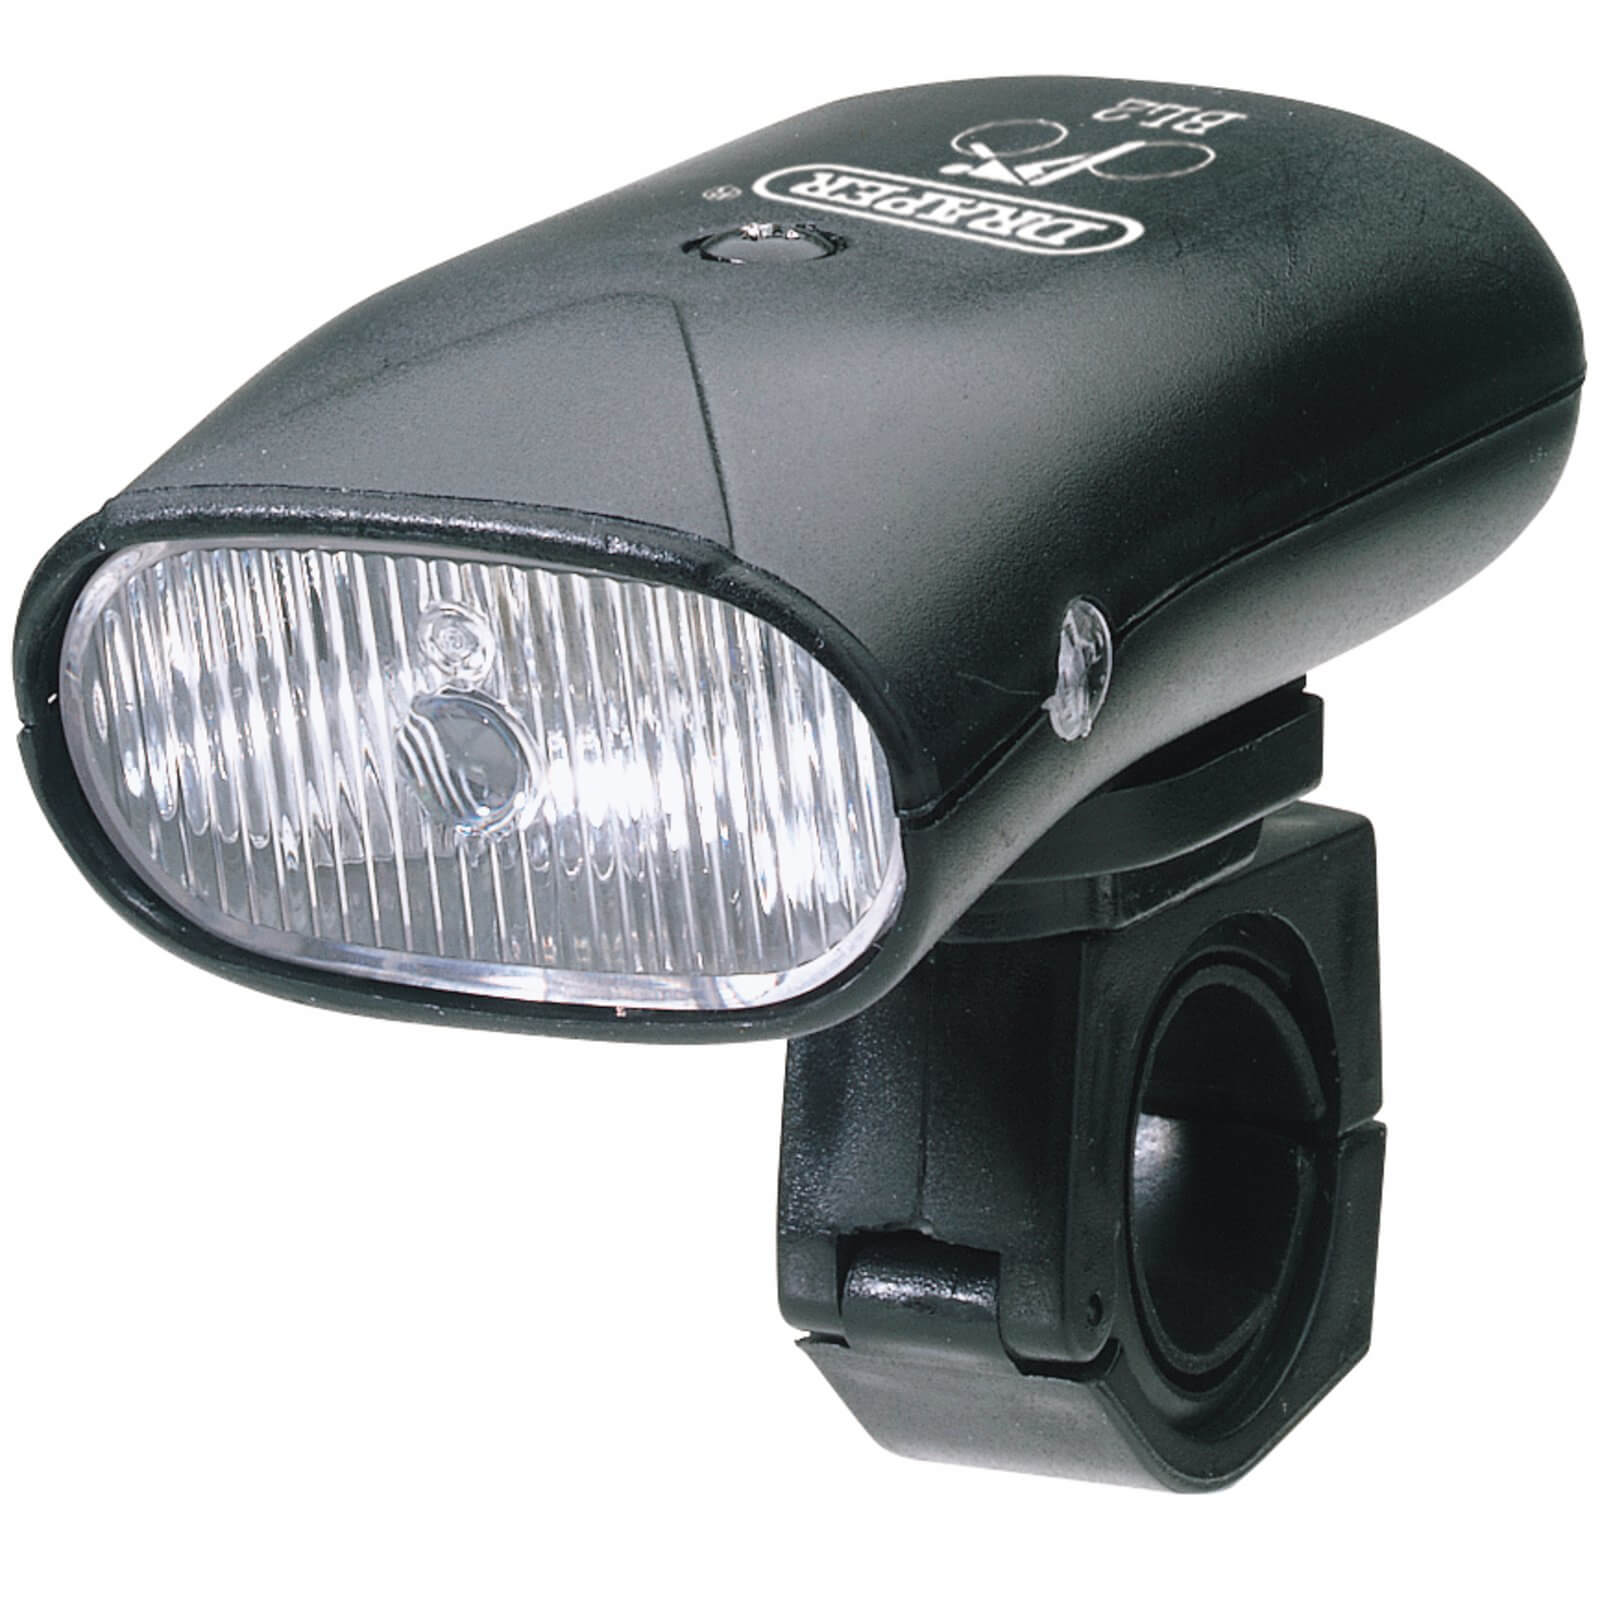 Image of Draper Front Krypton Bicycle Light